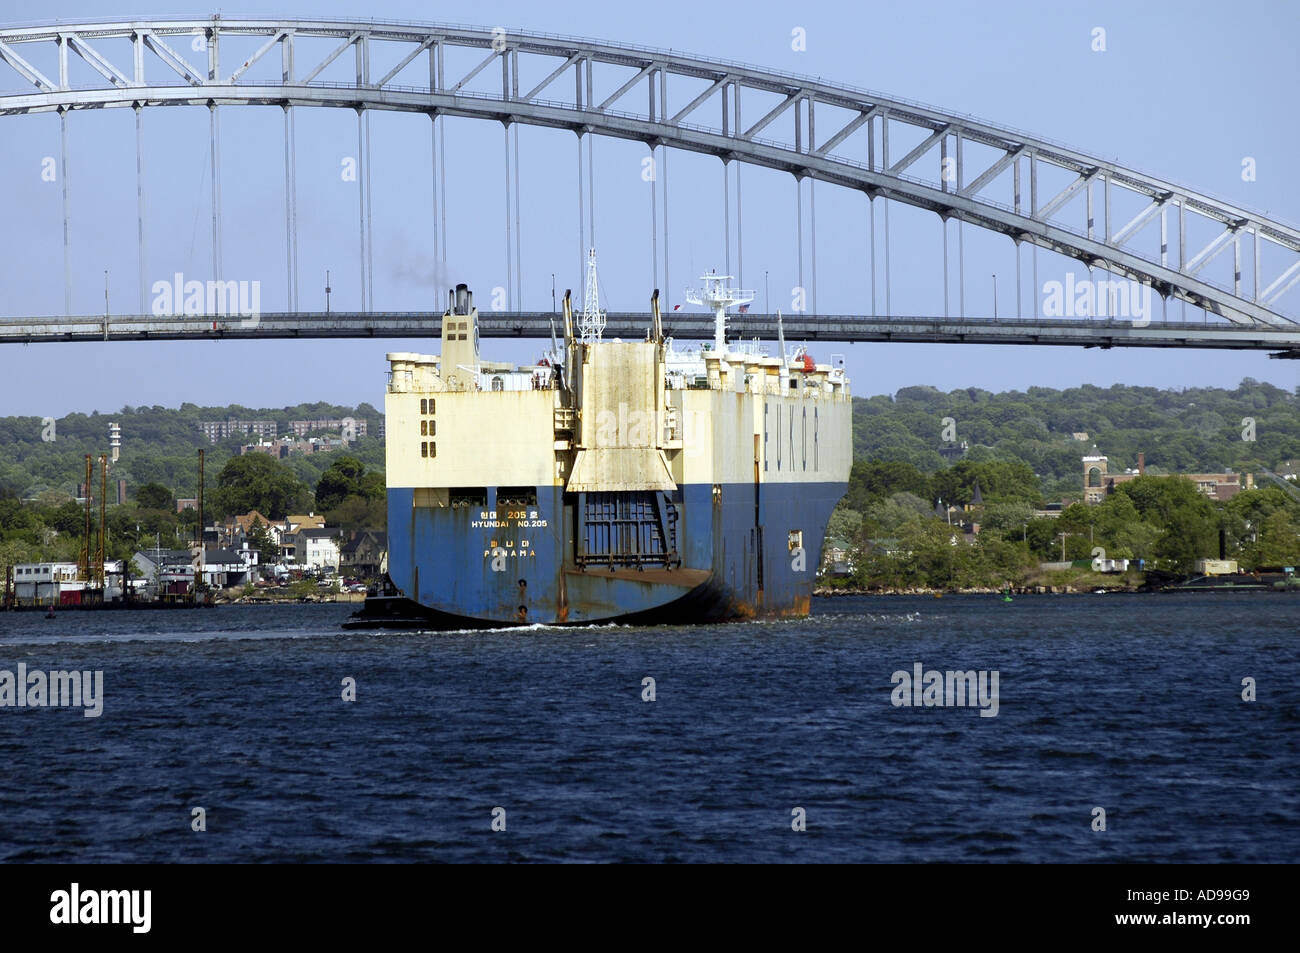 The Hyundai 205, an automobile transport ship of the Eukor lines prepares to bpass under the Bayonne Bridge. - Stock Image